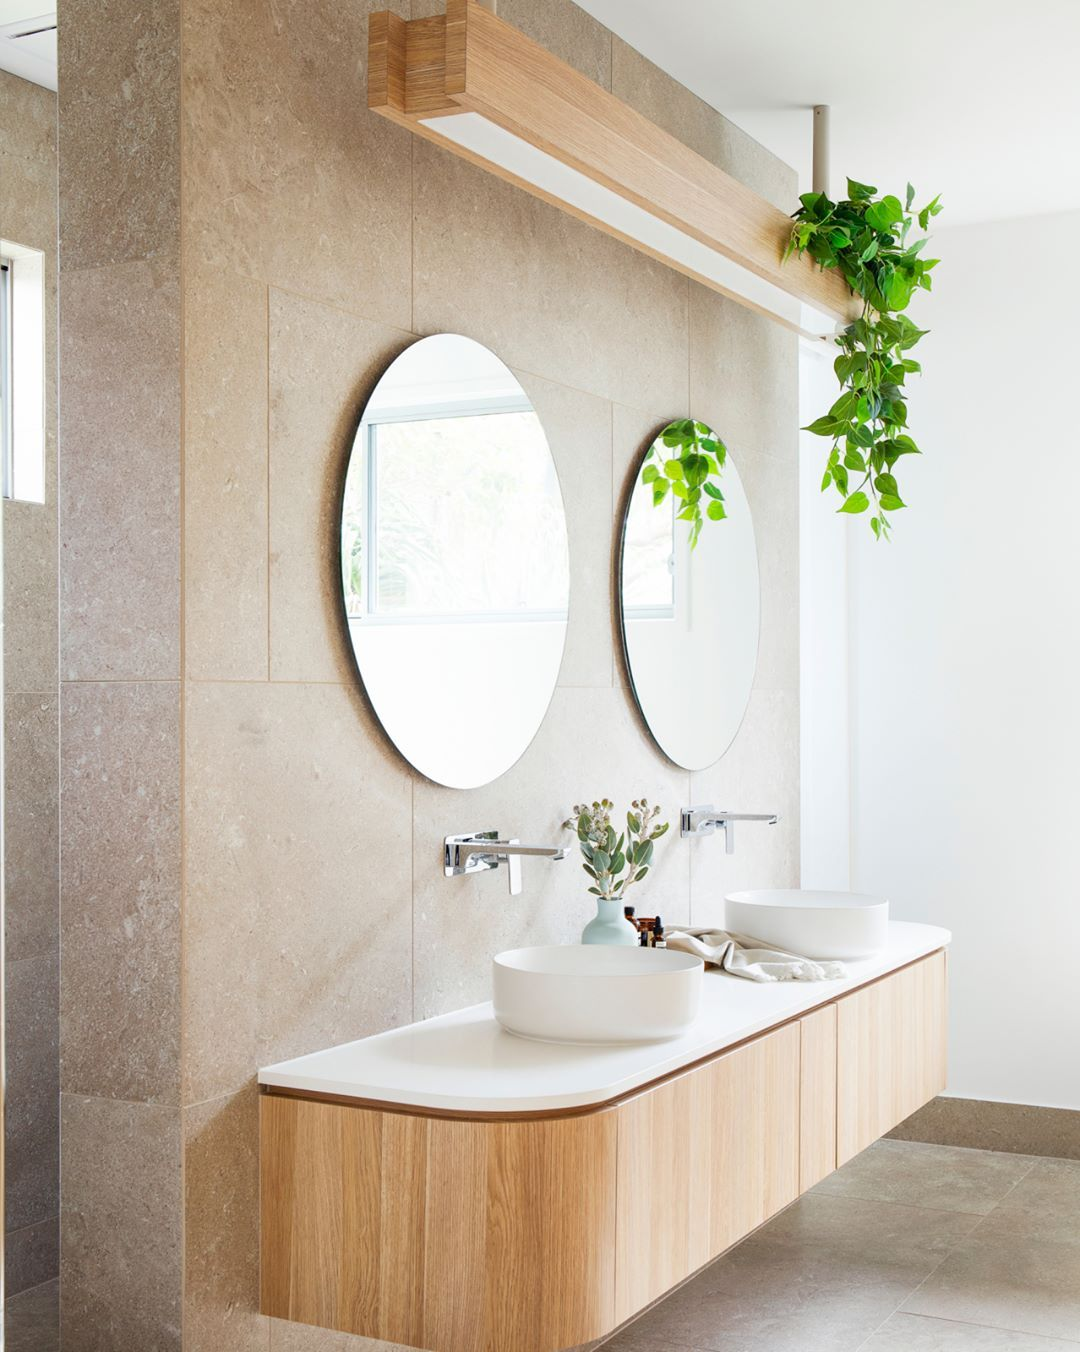 Home Beautiful On Instagram A Curved Vanity Serves As A Point Of Difference In This G Vintage Bathroom Mirrors Master Bathroom Decor Country Bathroom Mirrors